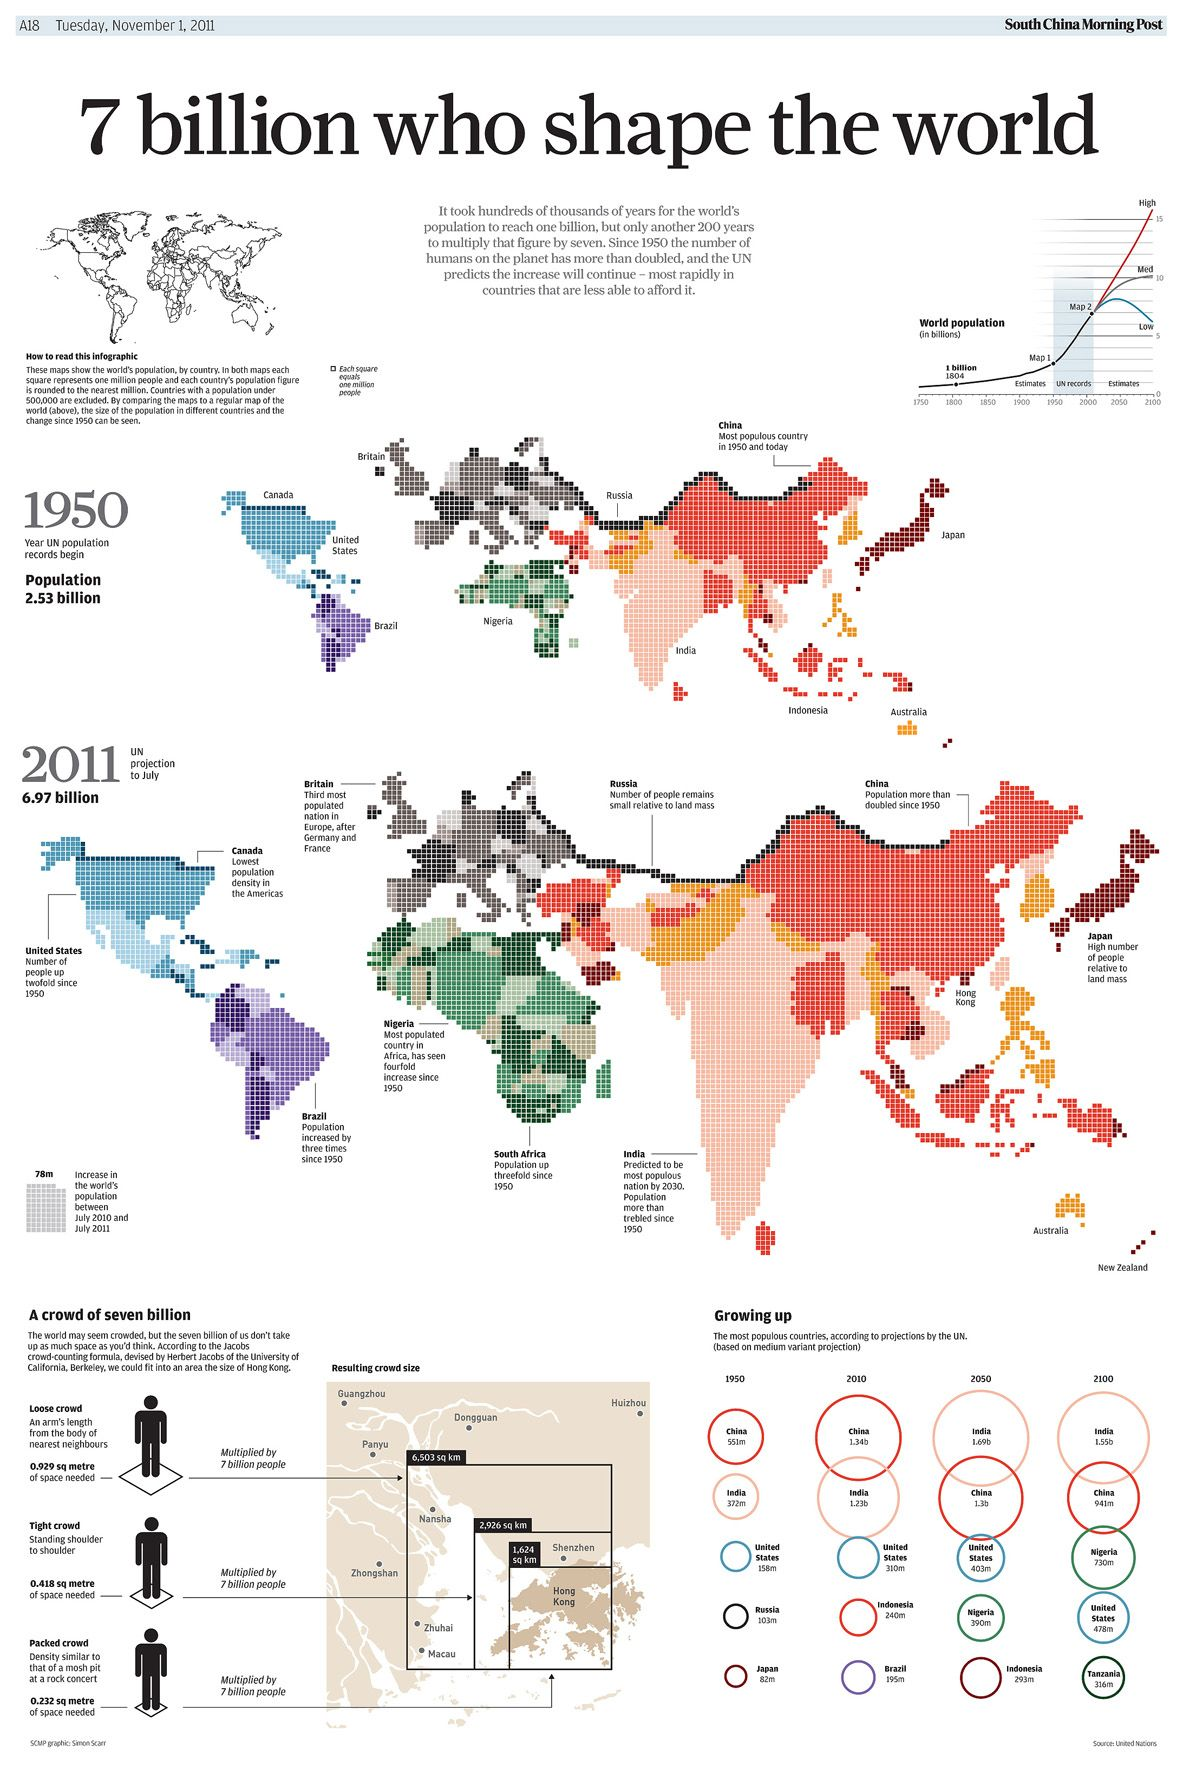 world map of human population growth between 1950 and 2011